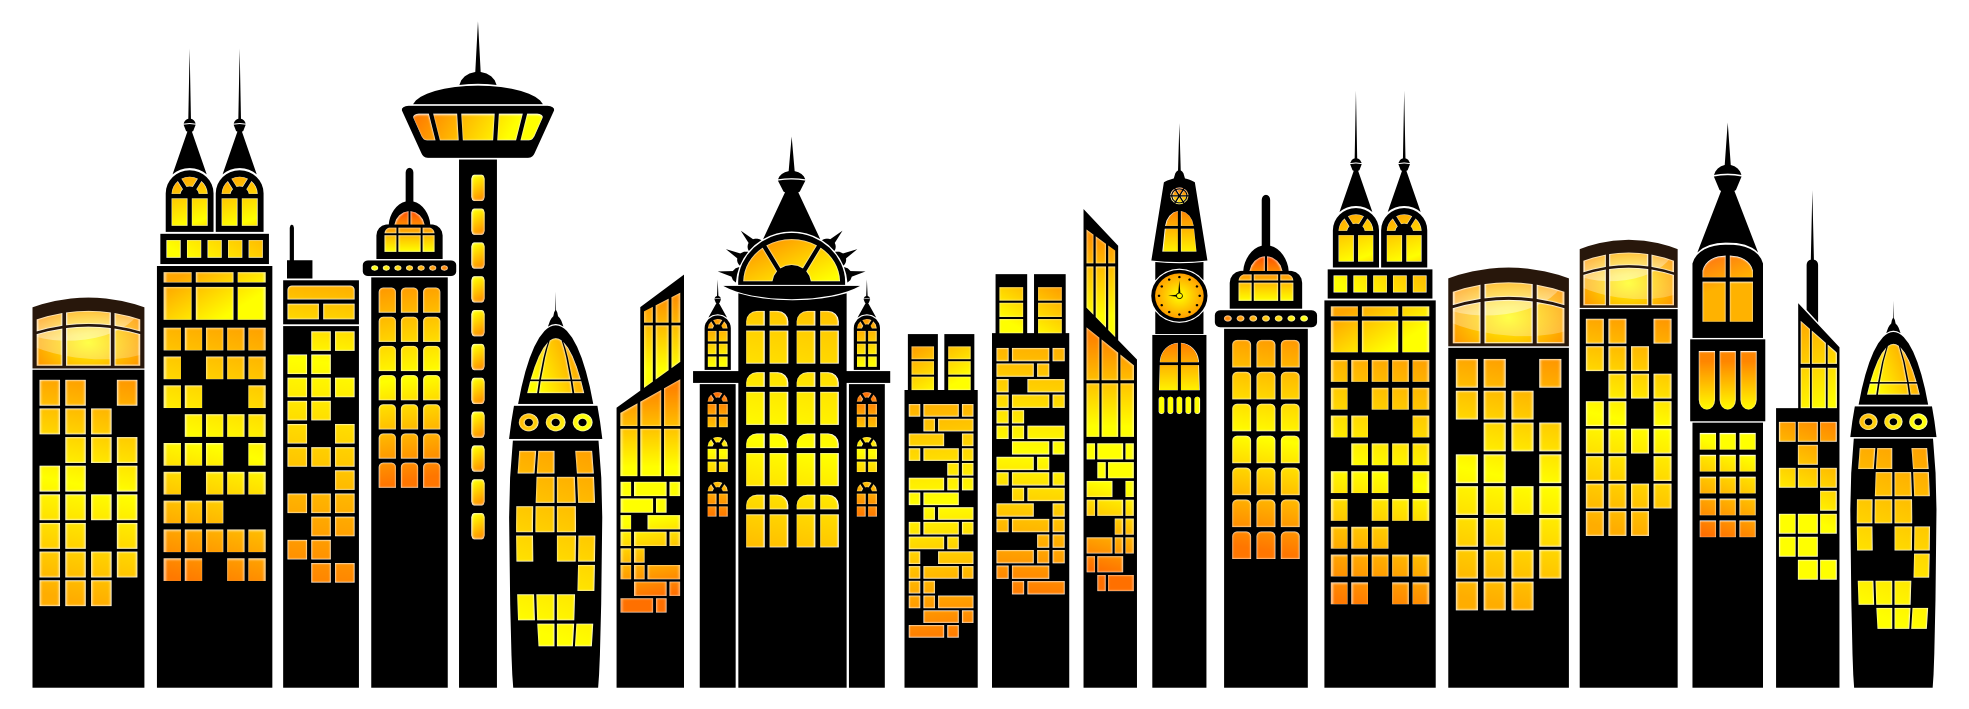 Comic book cityscape clipart picture freeuse Images of City Building Clipart - #SpaceHero picture freeuse